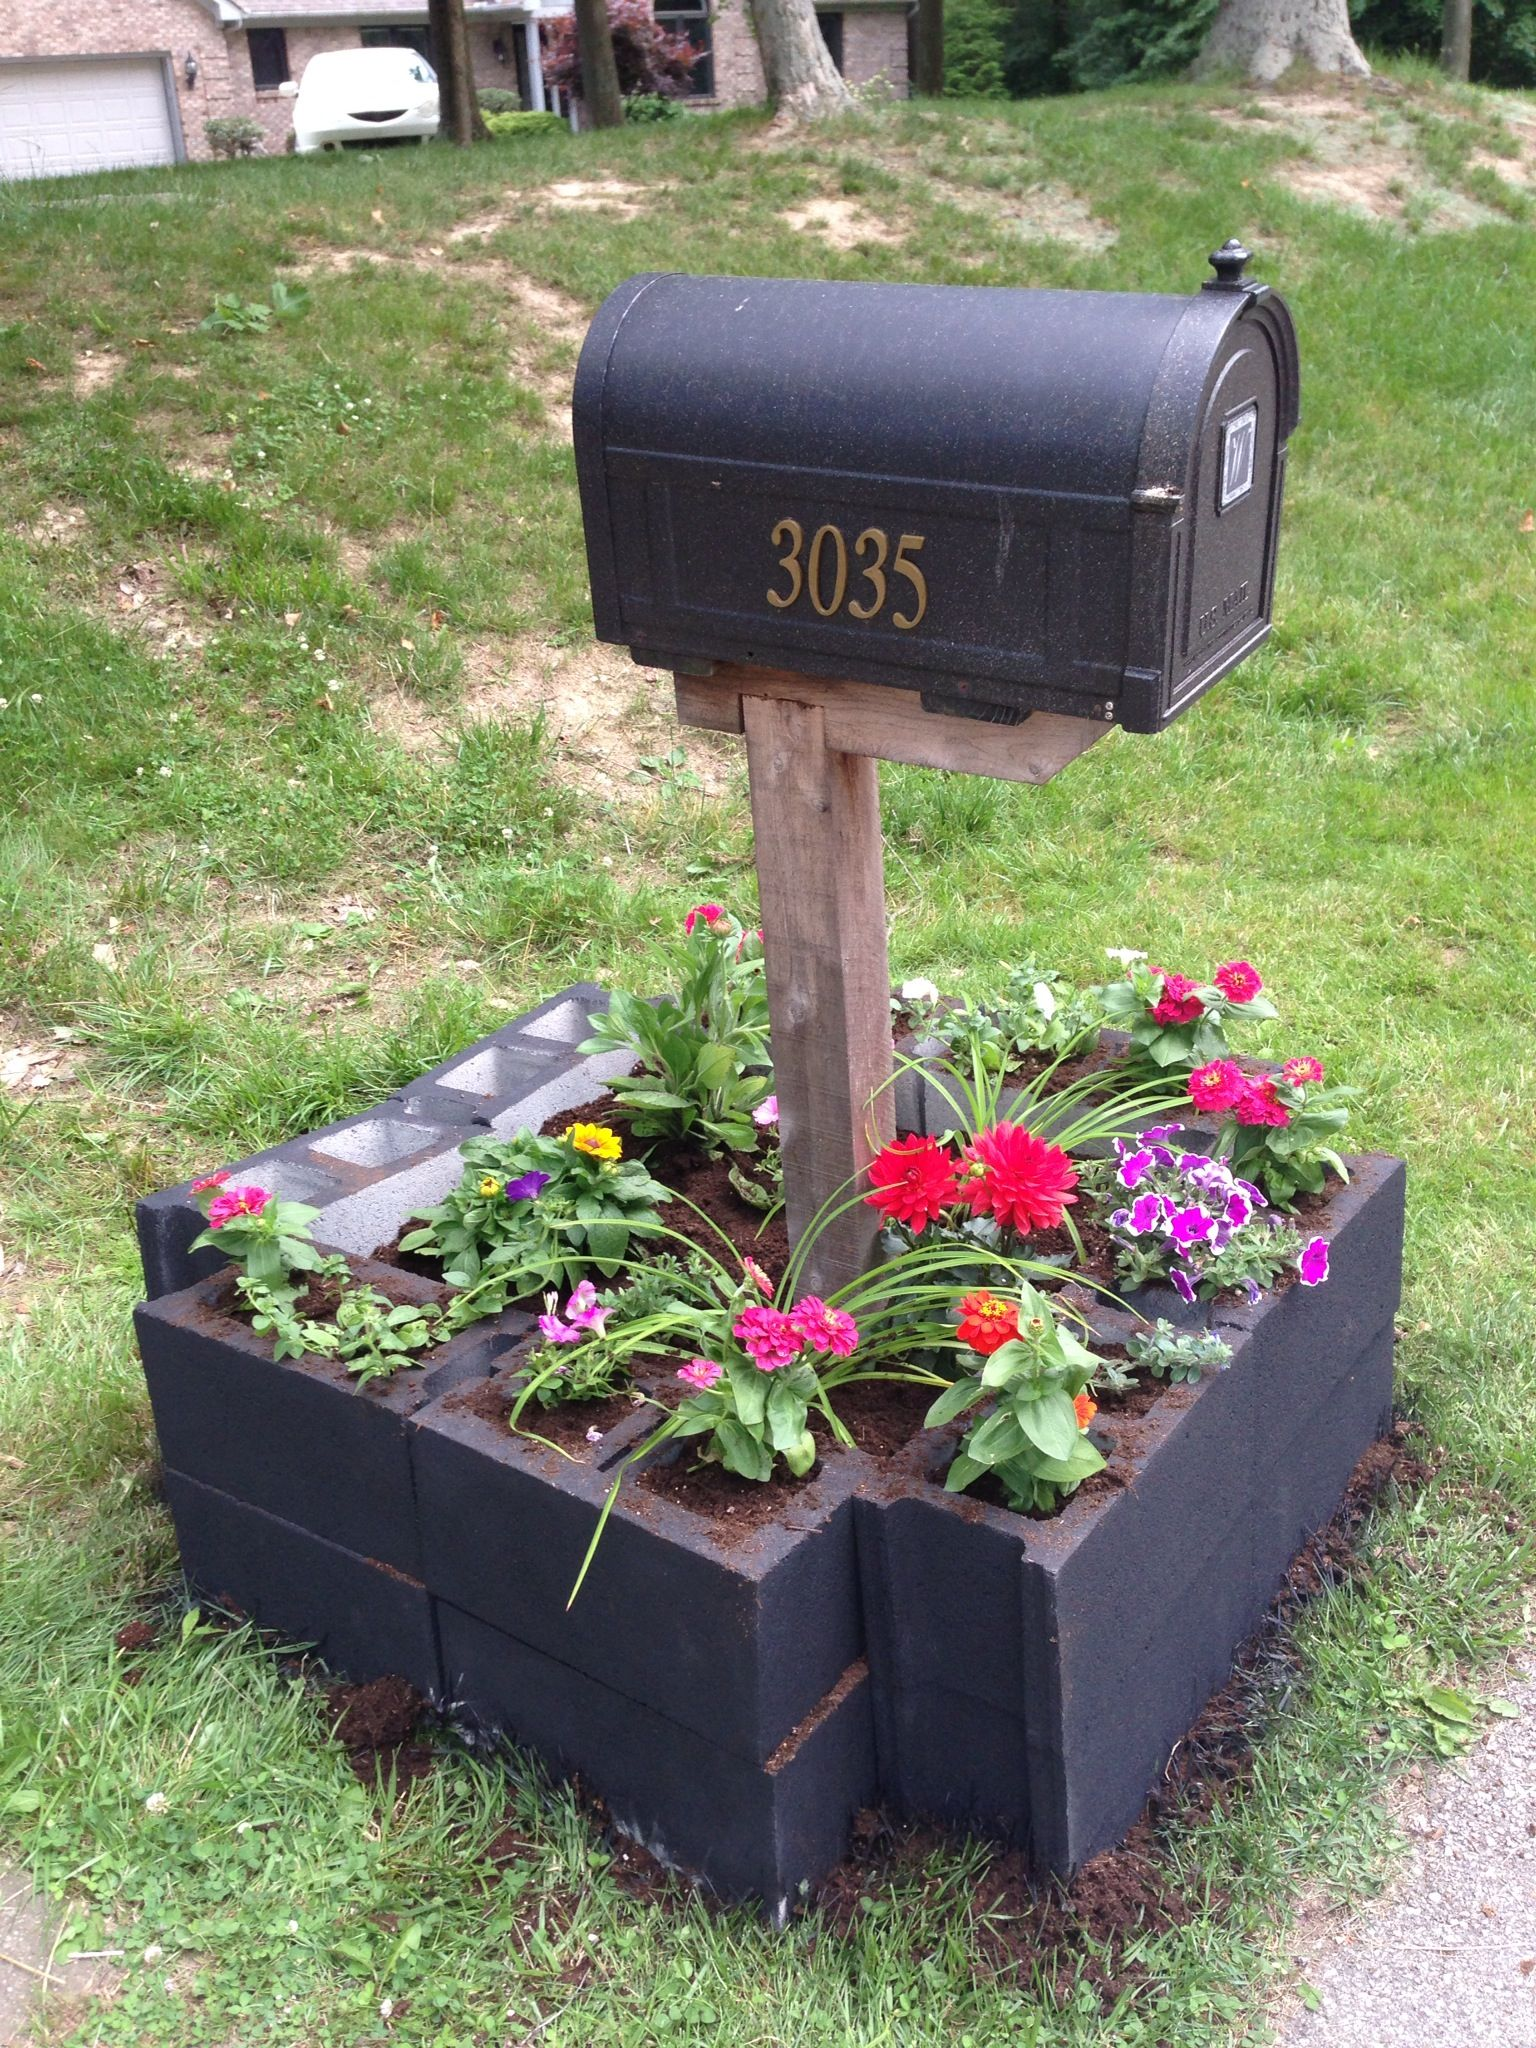 5 Flower Bed Landscape Ideas |Cinder Block Flower Bed Plans